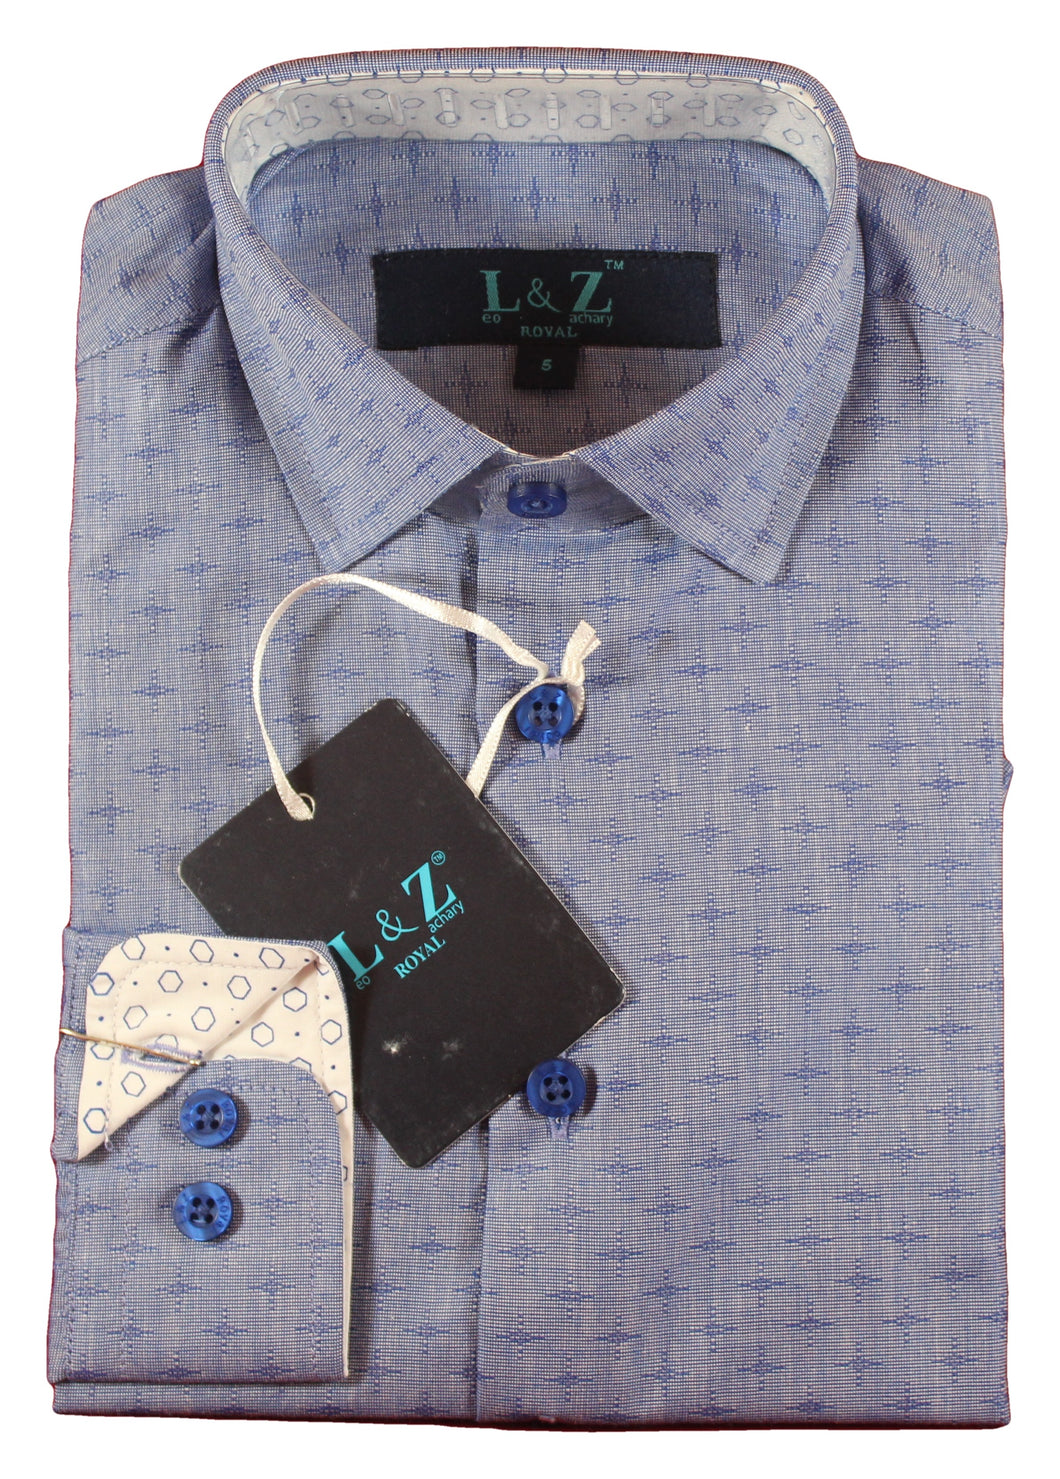 LEO & ZACHARY - Boys Dress Shirts Deep Blue Vector 5742 - Guys and Co. (5478492307608)